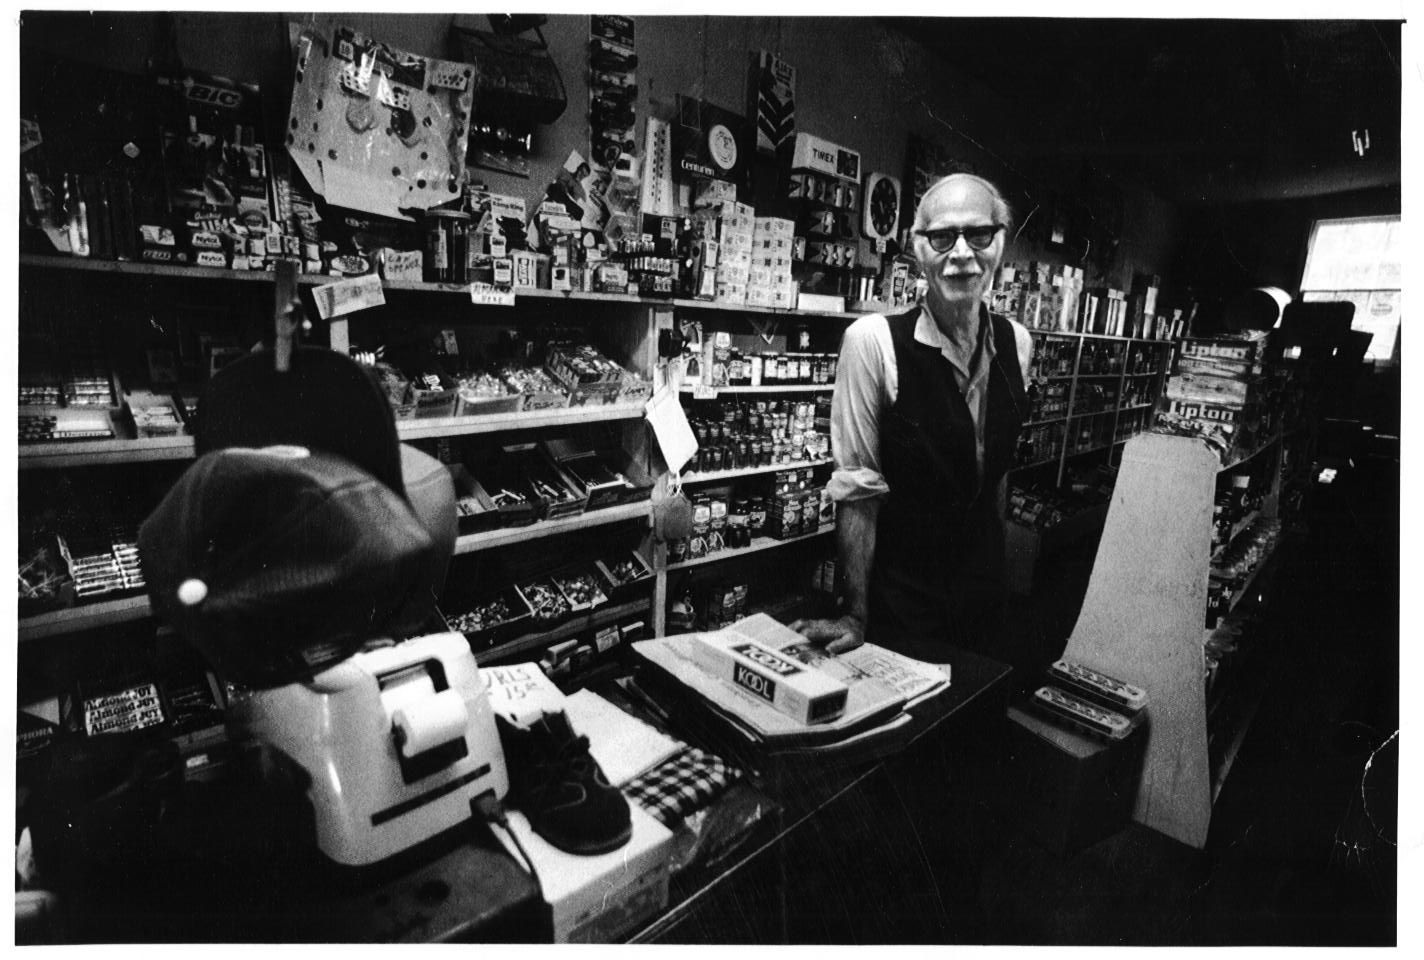 Asa Moore in Janney's Store - 1970s